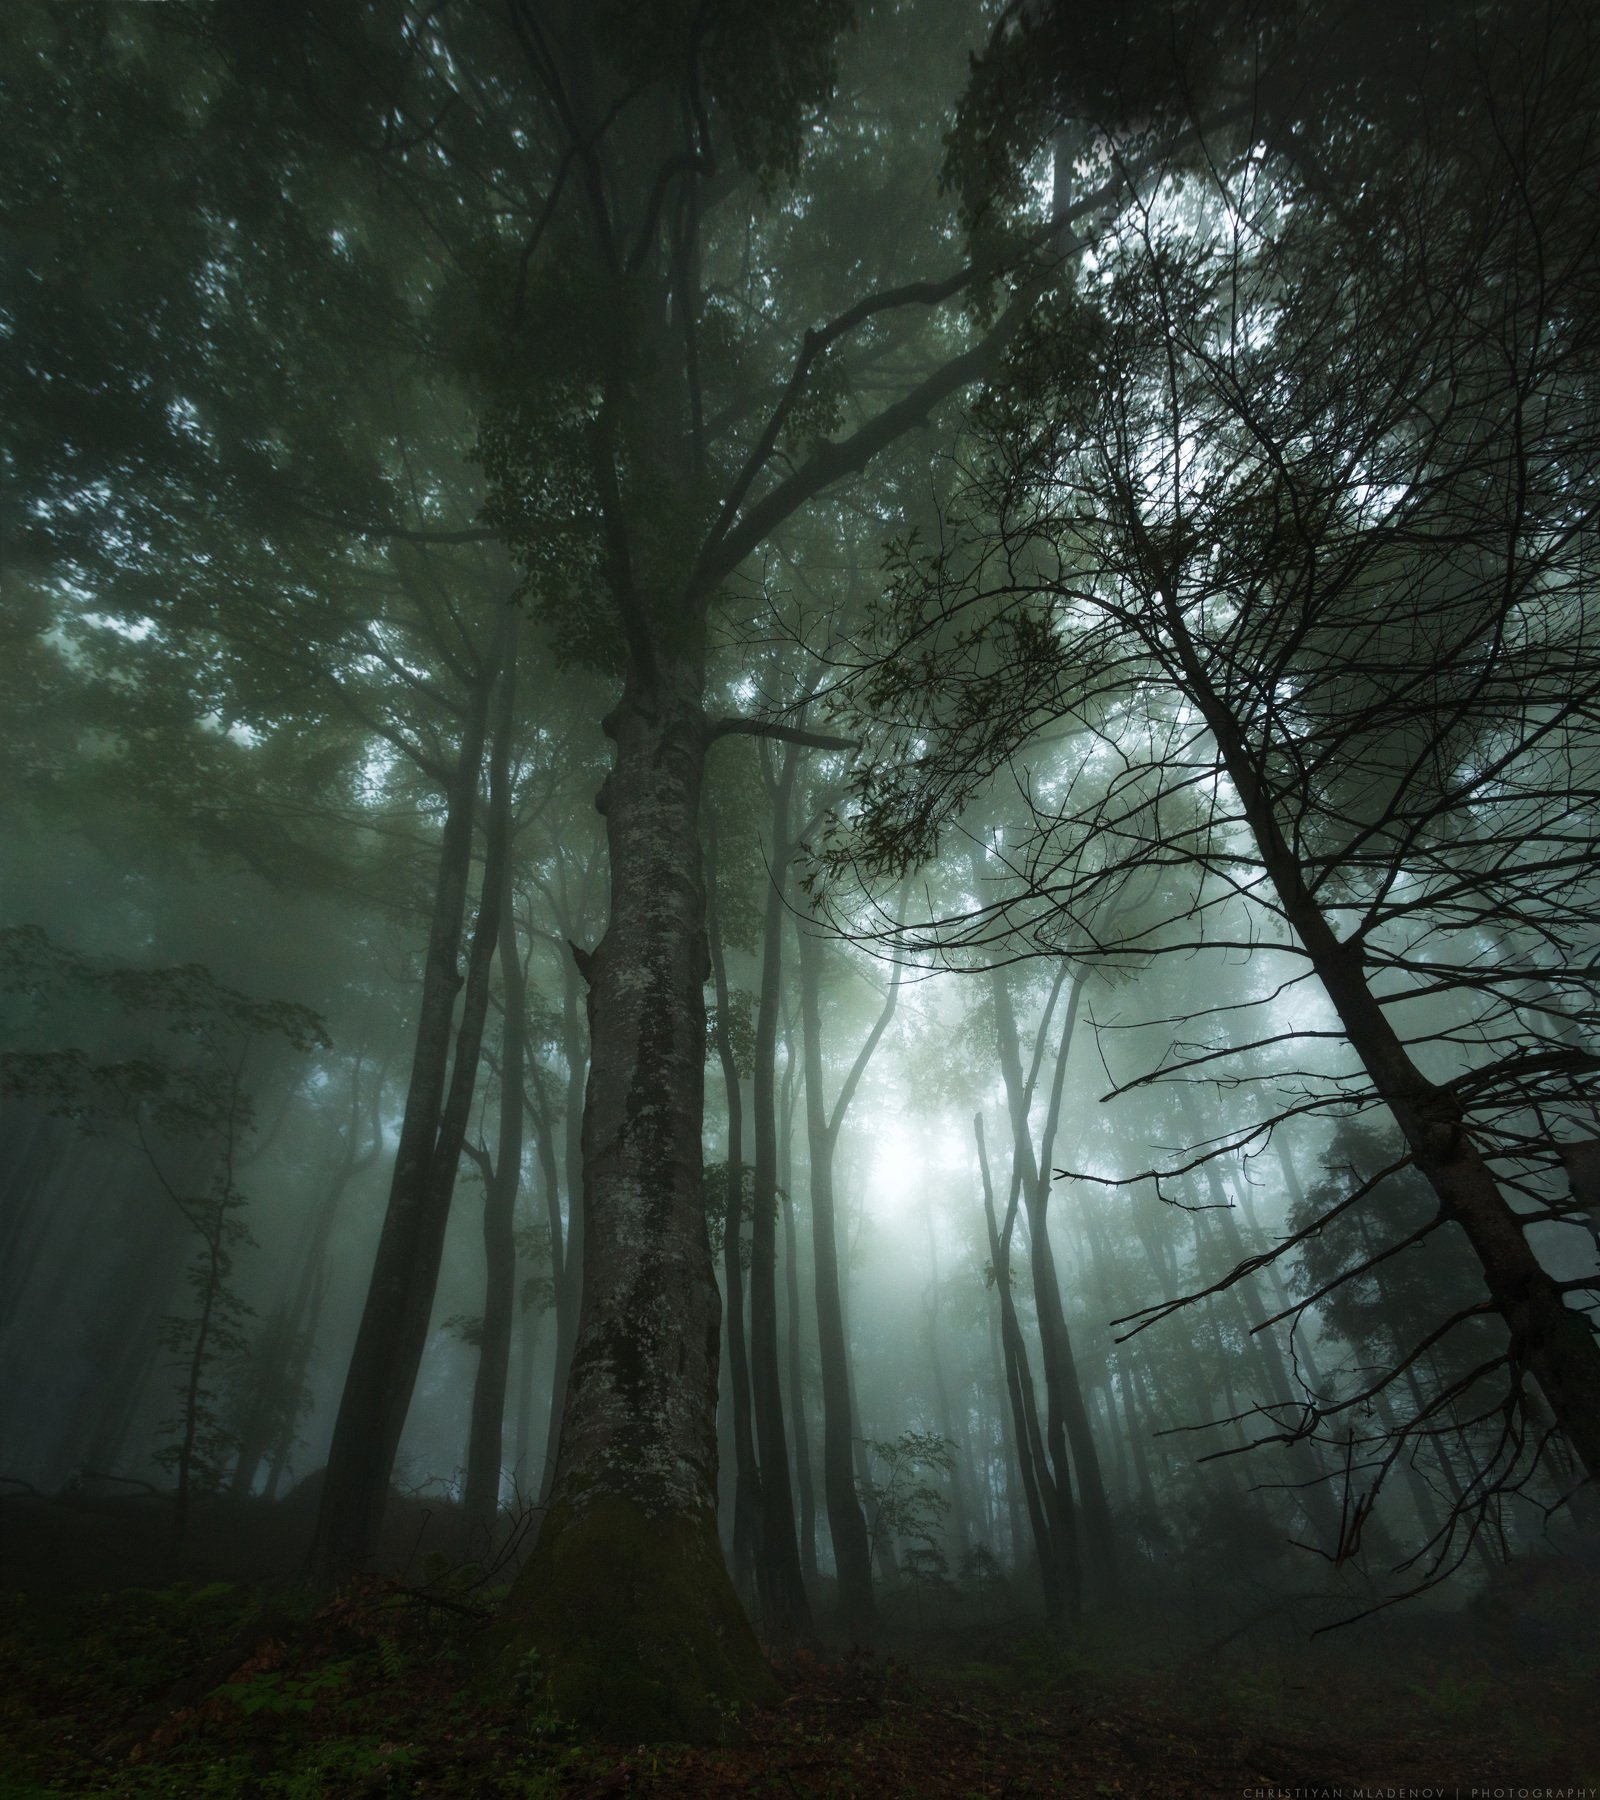 landscape, forest, tree, wide angle, fog, mist, mountain, woods, spring, bulgaria, nature, green, plant, weed, leafs, dream, panorama, woodland, gora, mountain,, Кристиян Младенов